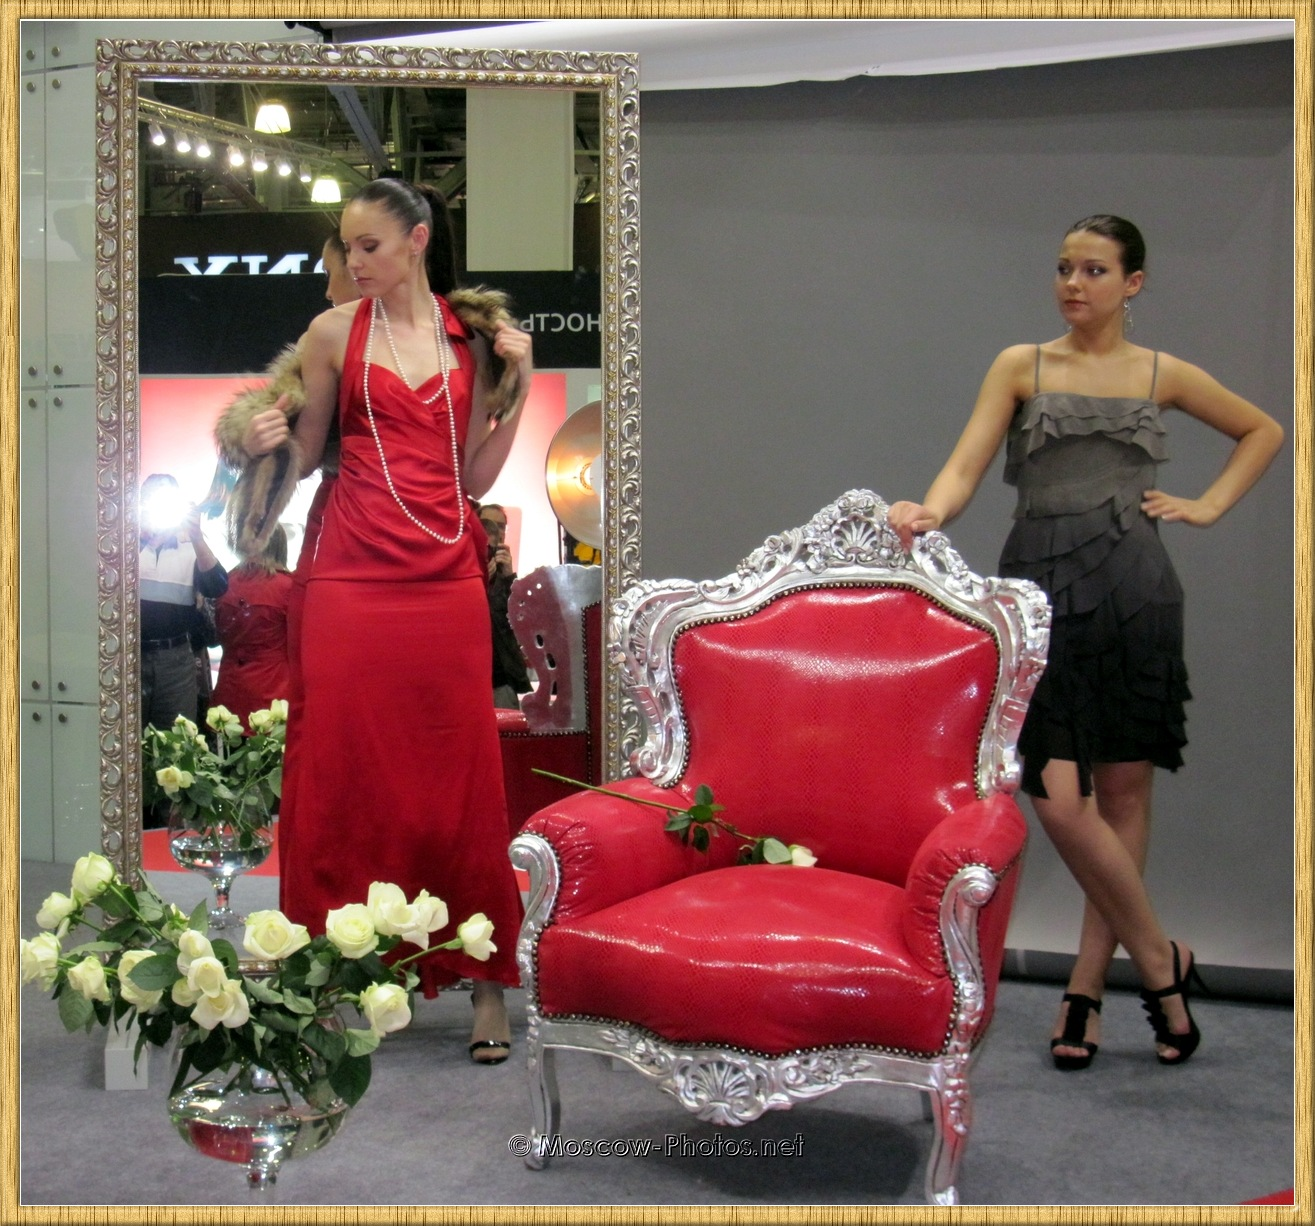 Moscow Models Posing In Dresses at Photoforum 2010